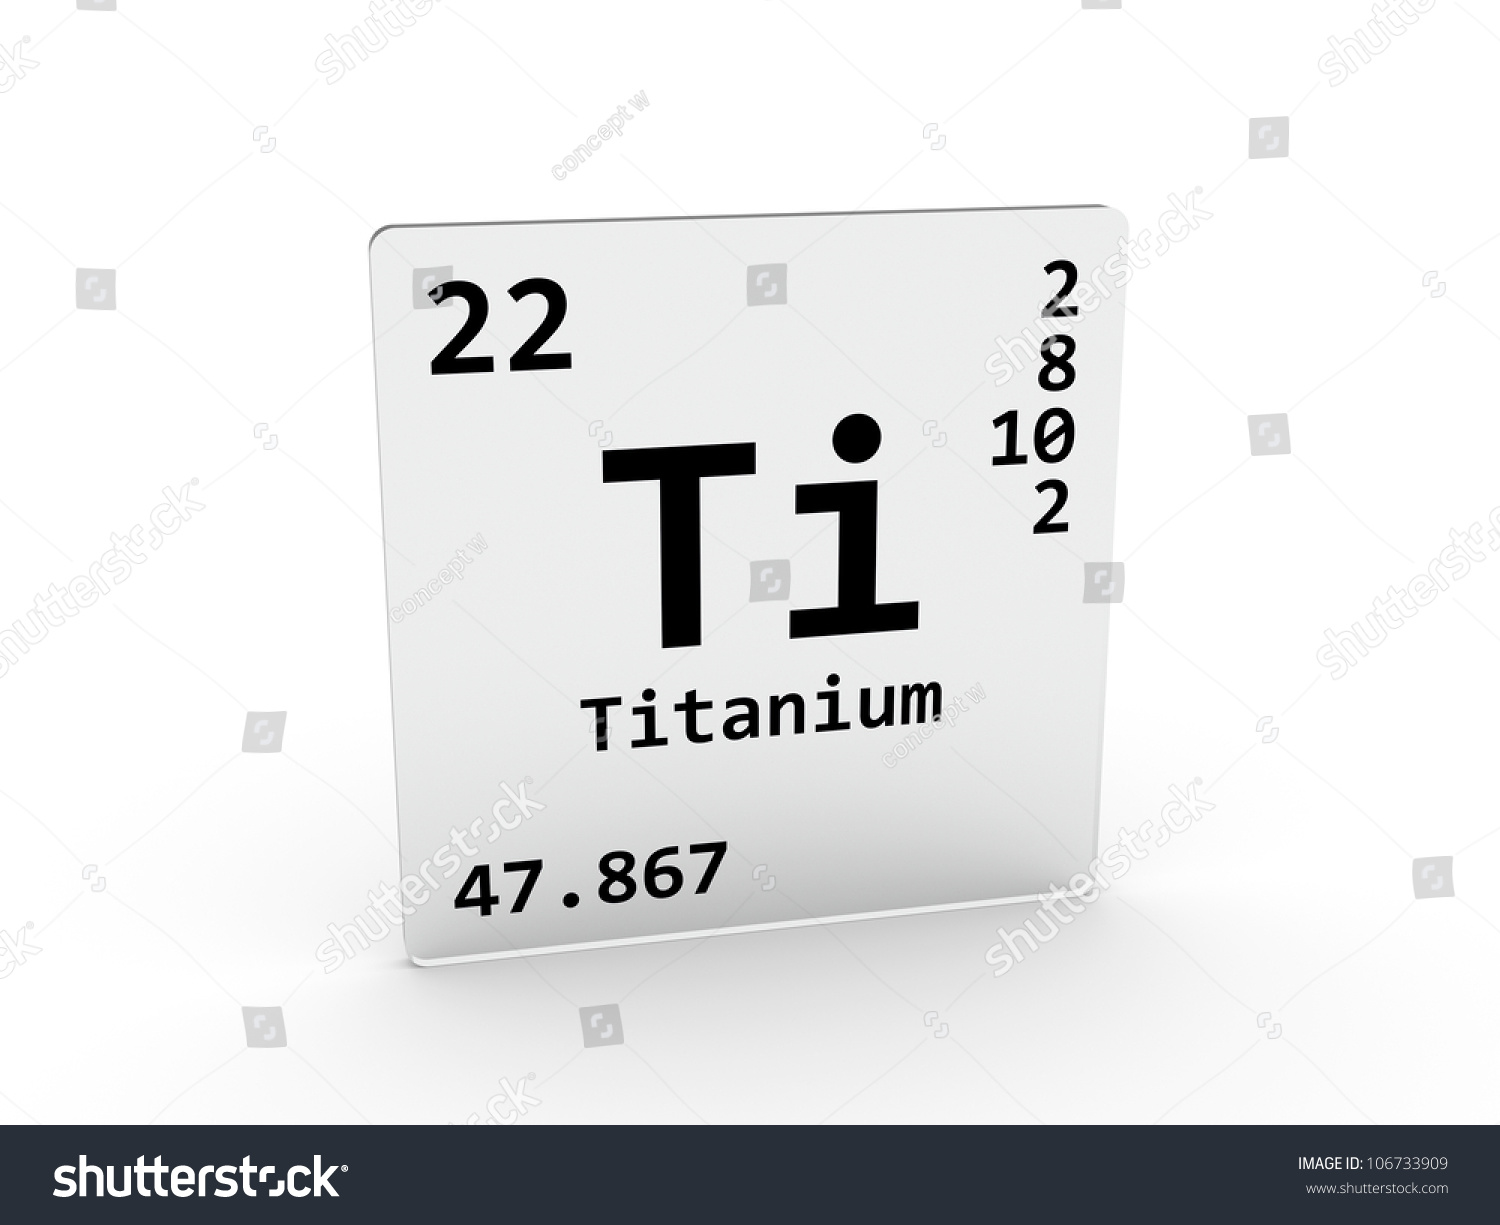 Titanium symbol ti element periodic table stock - Tungsten symbol periodic table ...